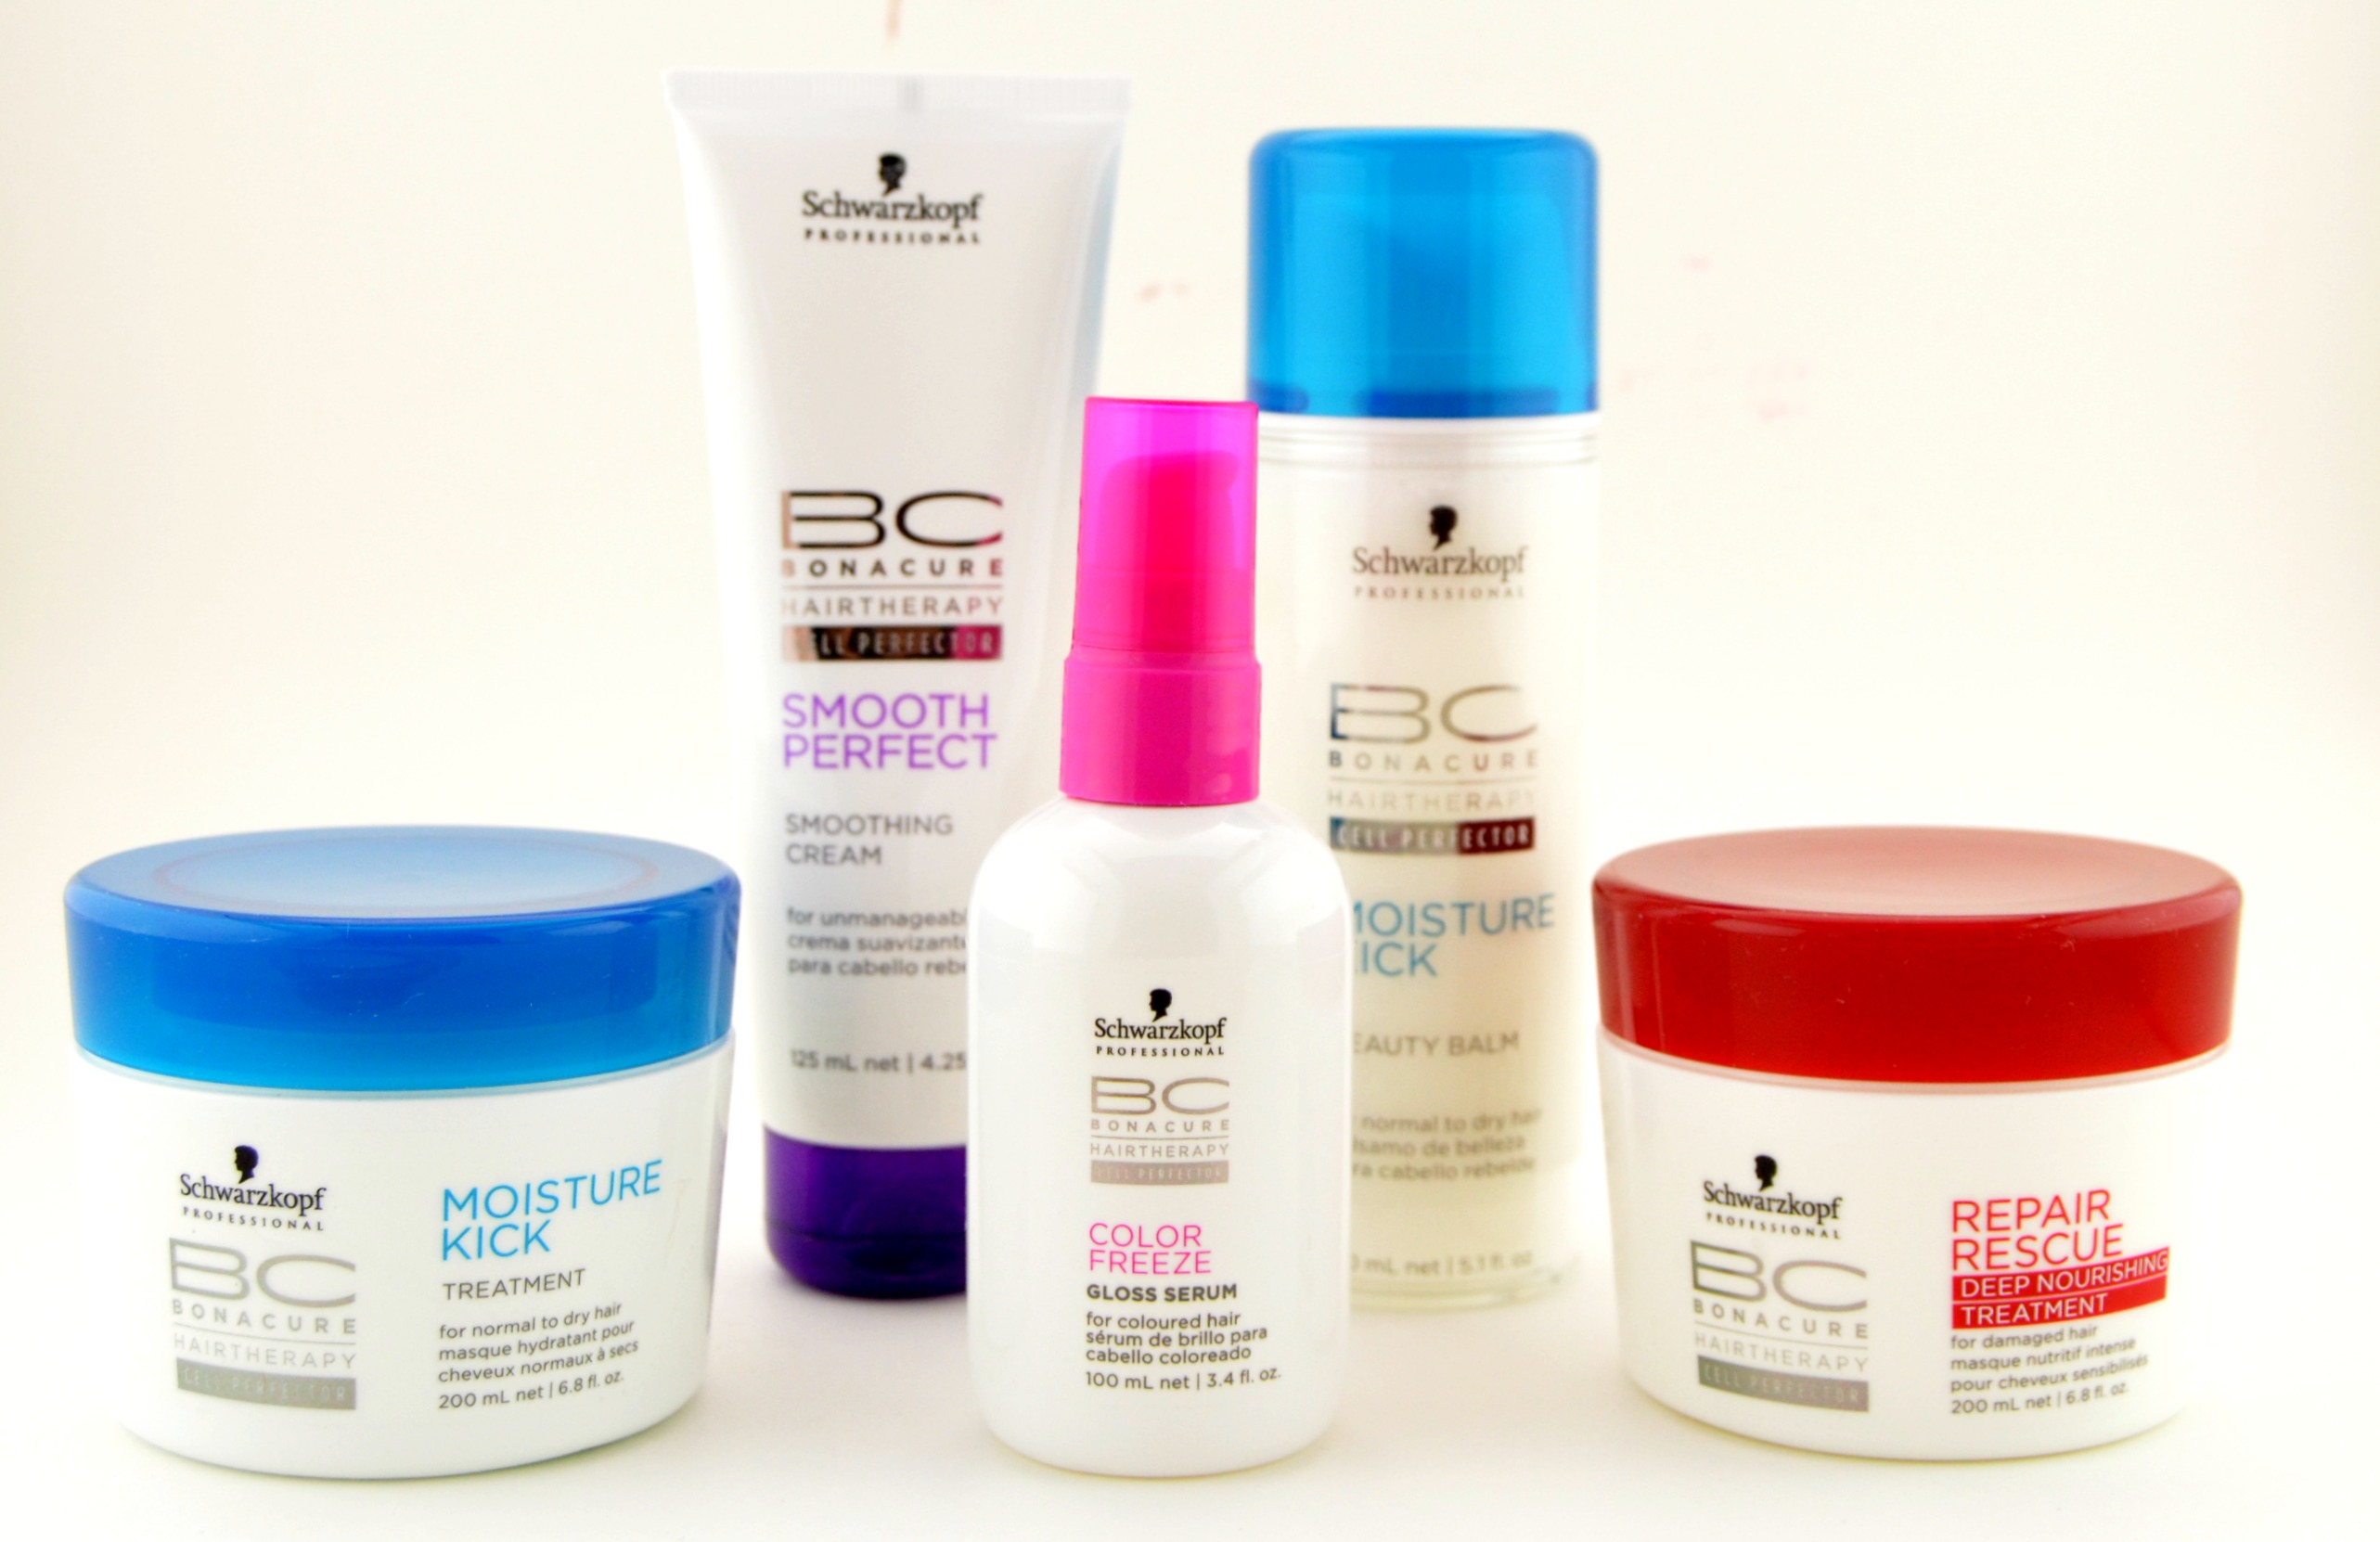 Schwarzkopf Professional Hair Color: Overview